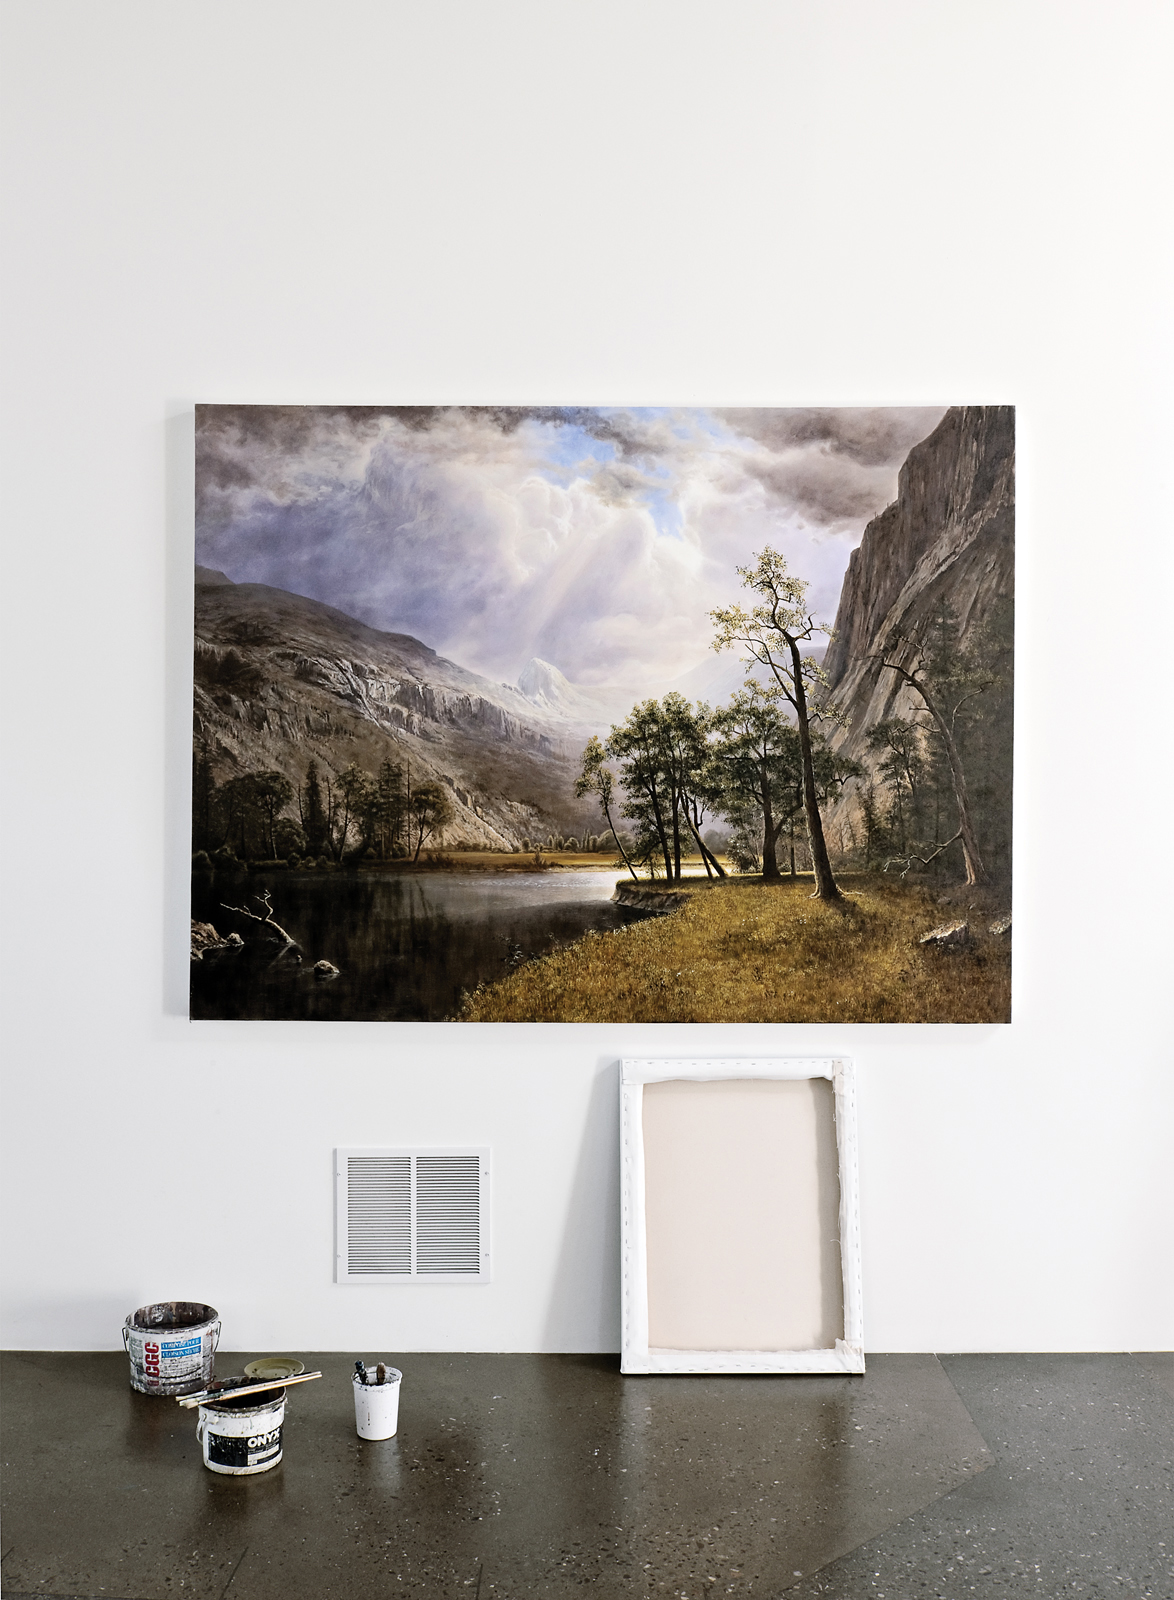 Andrew Monkman painting on wall